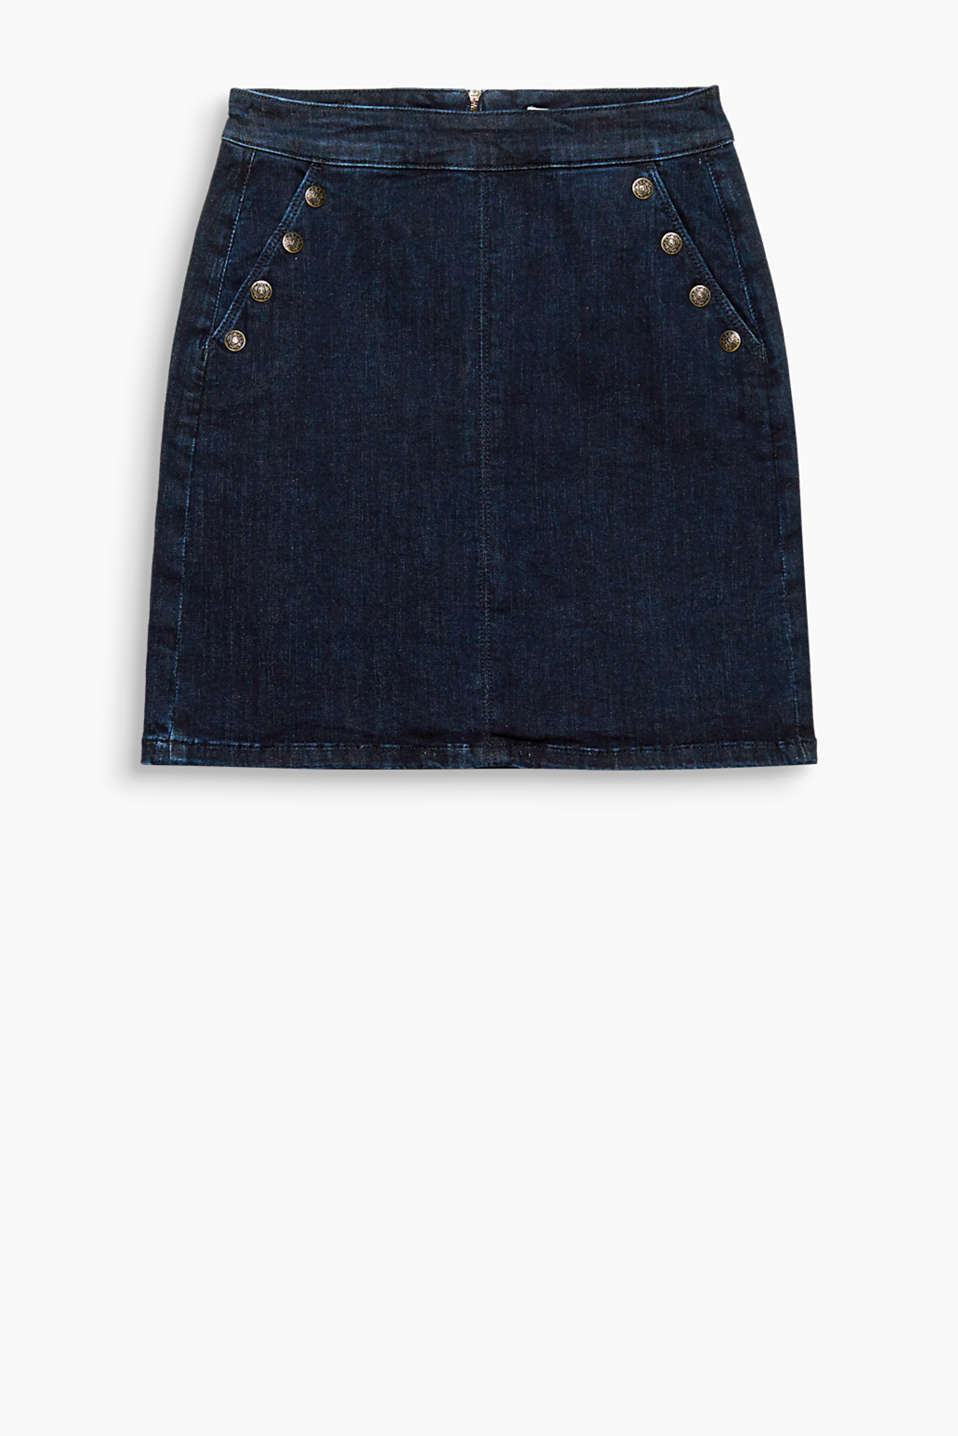 Denim goes military: The crested buttons transform this flared skirt in dark stretch denim into a real fashion piece.